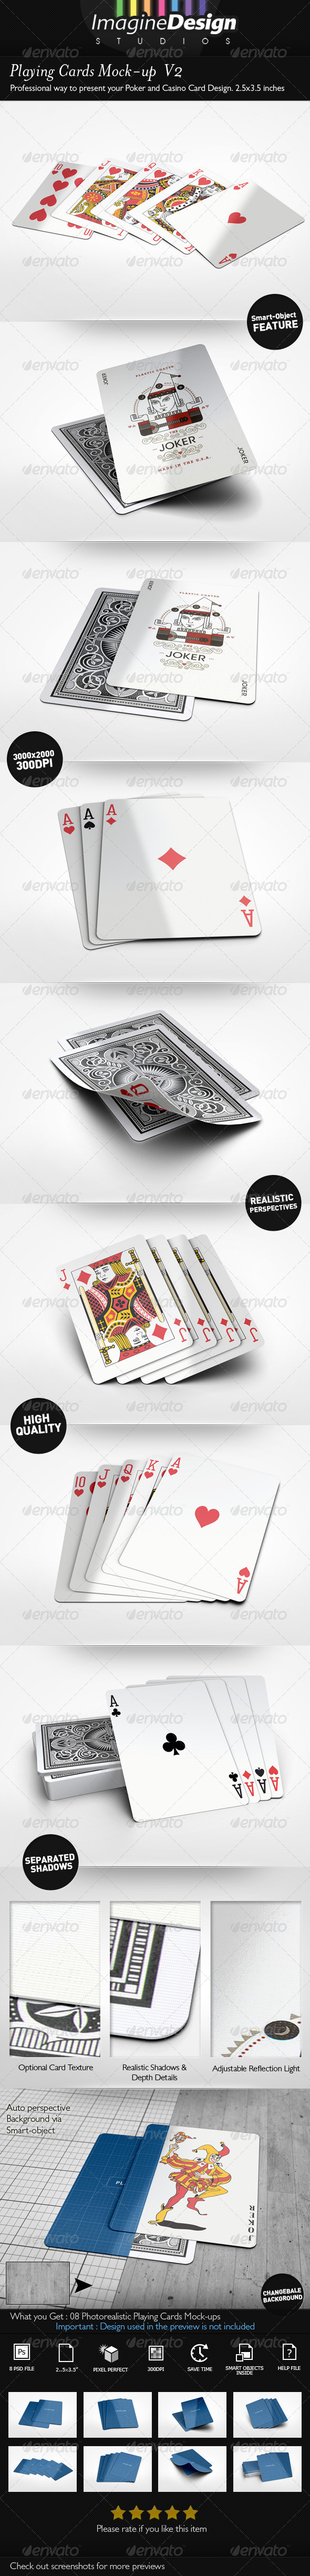 GraphicRiver Playing Cards Mock-up V2 8005530